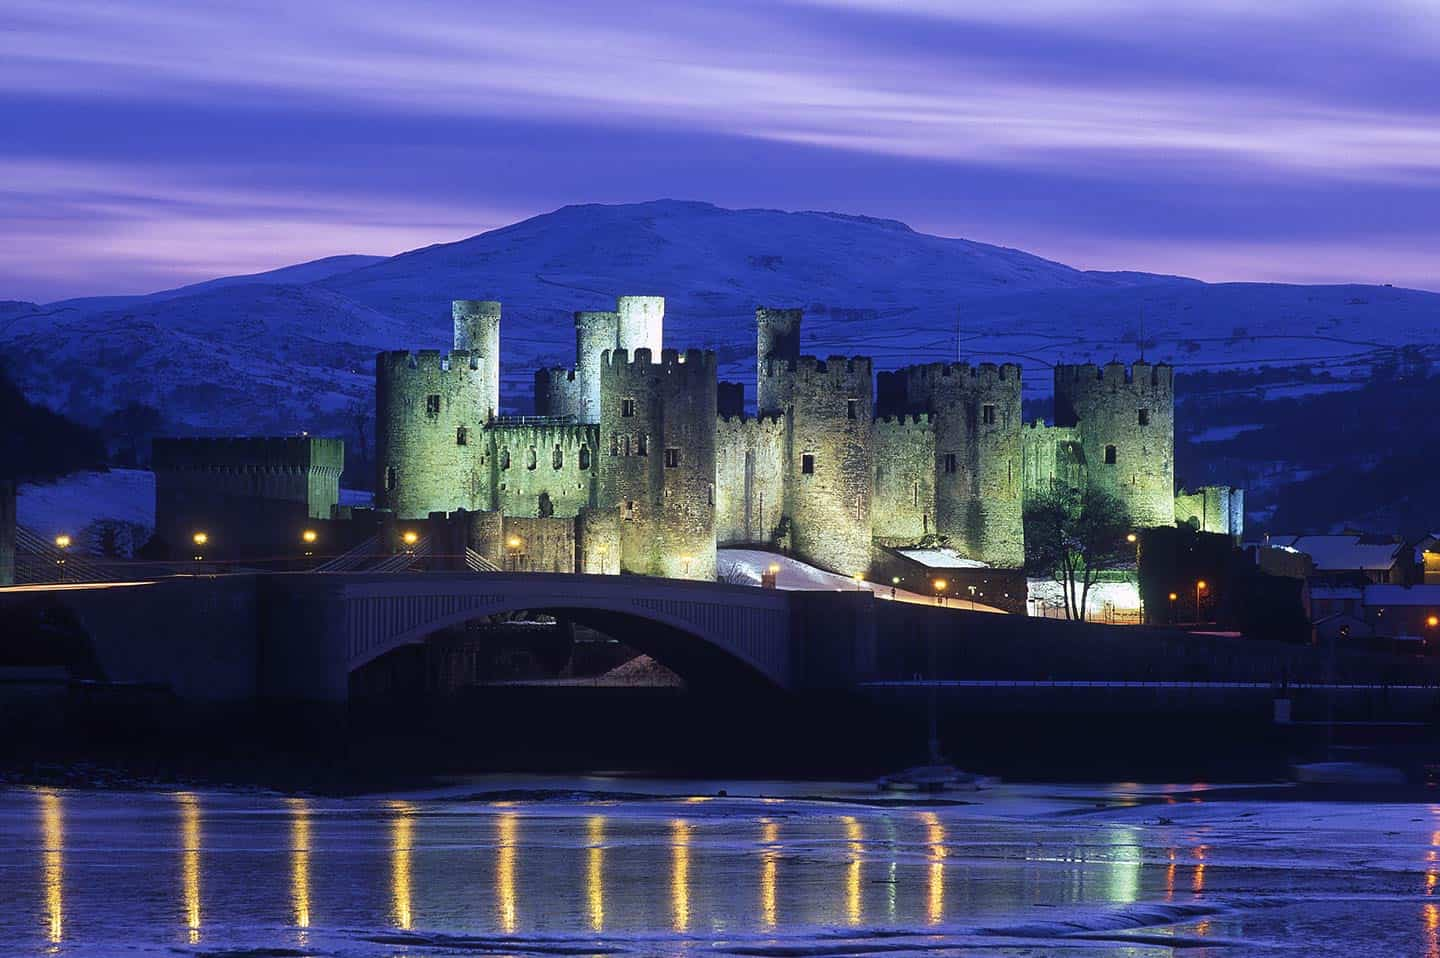 Image of Conwy Castle, one of the top castles in the world